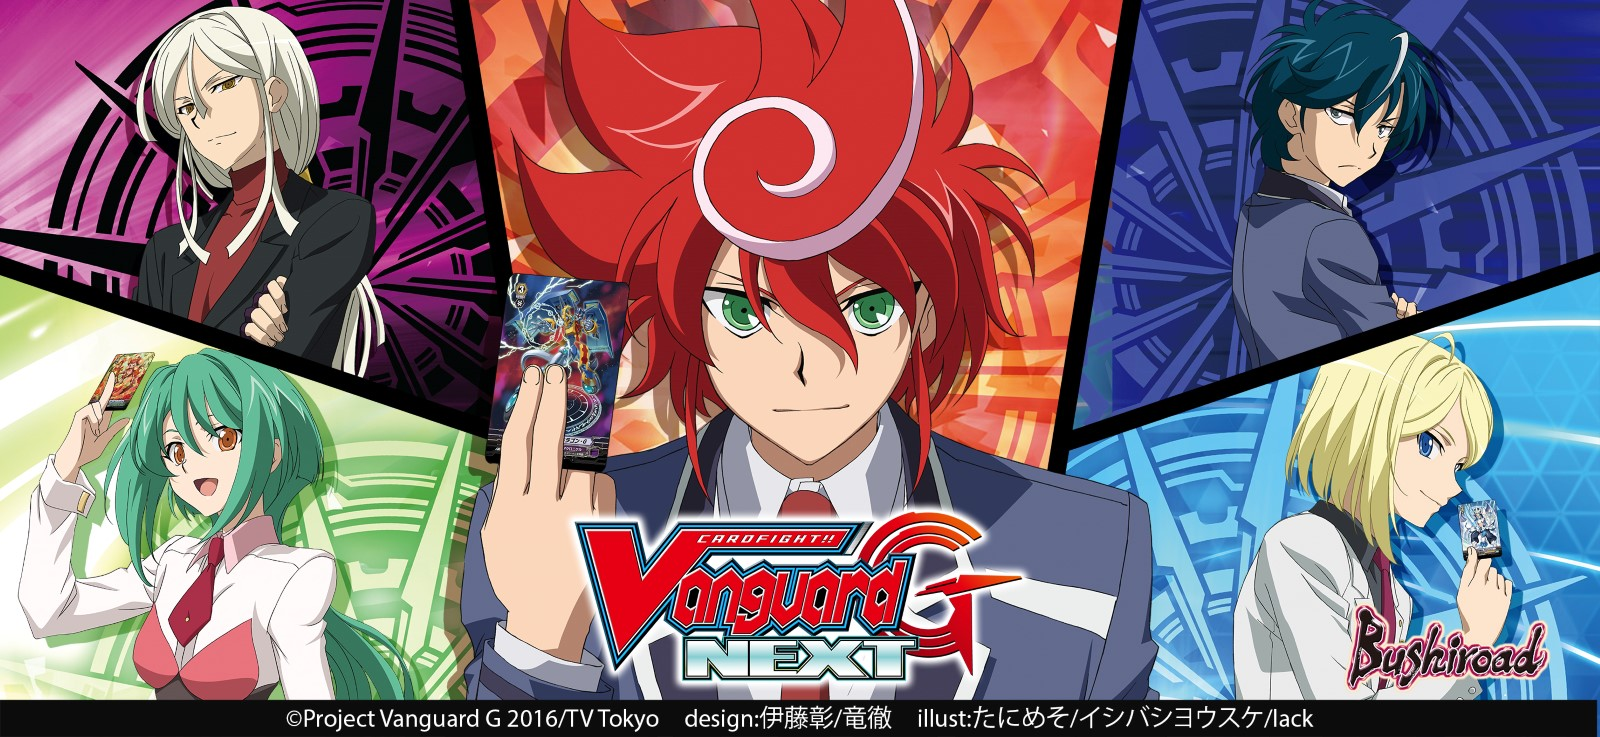 Cardfight Vanguard Local ( Friday Nights )